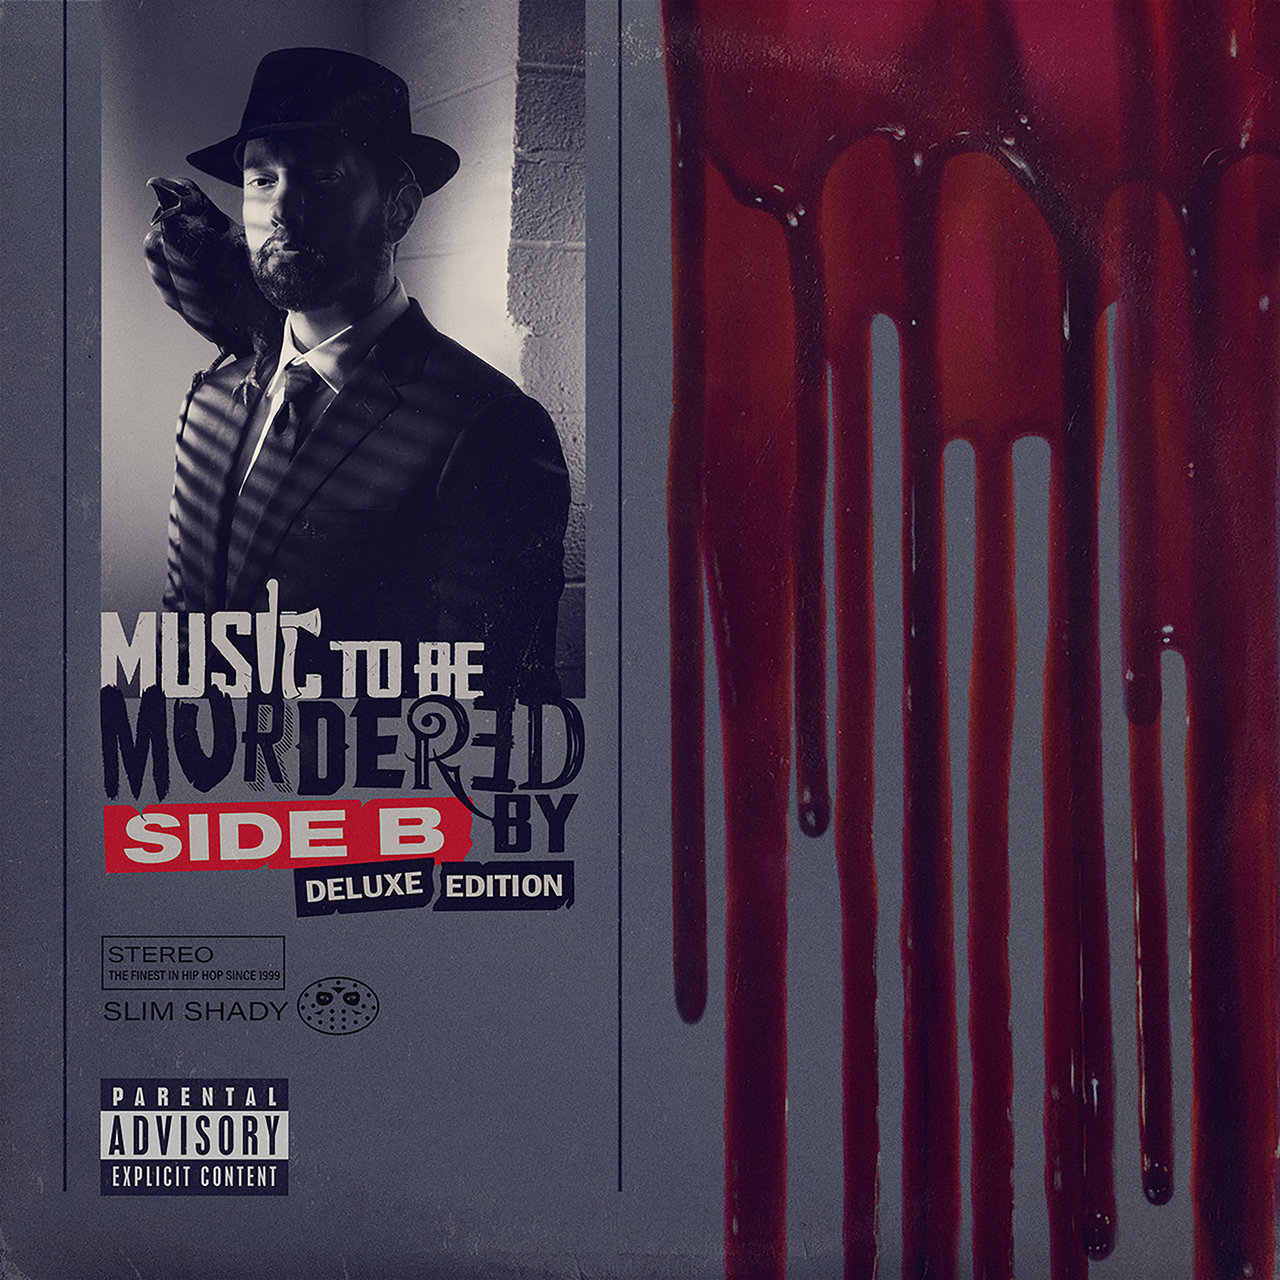 Eminem - Music To Be Murdered By - Side B (Deluxe Edition) (Cover)